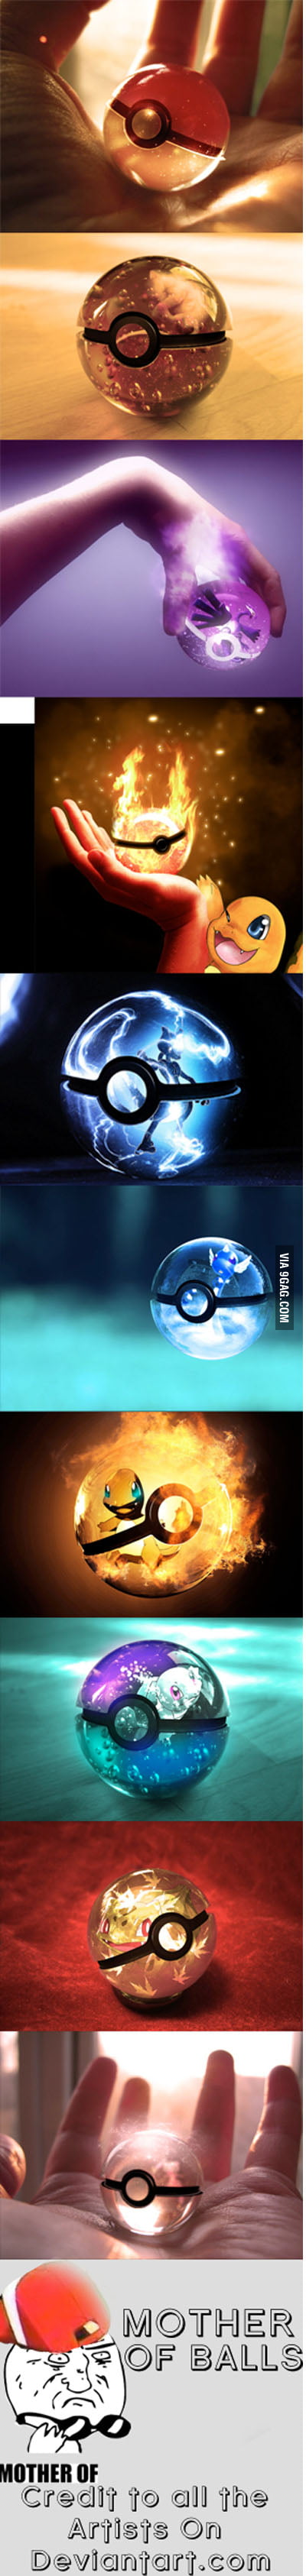 I heard you like pokeballs...